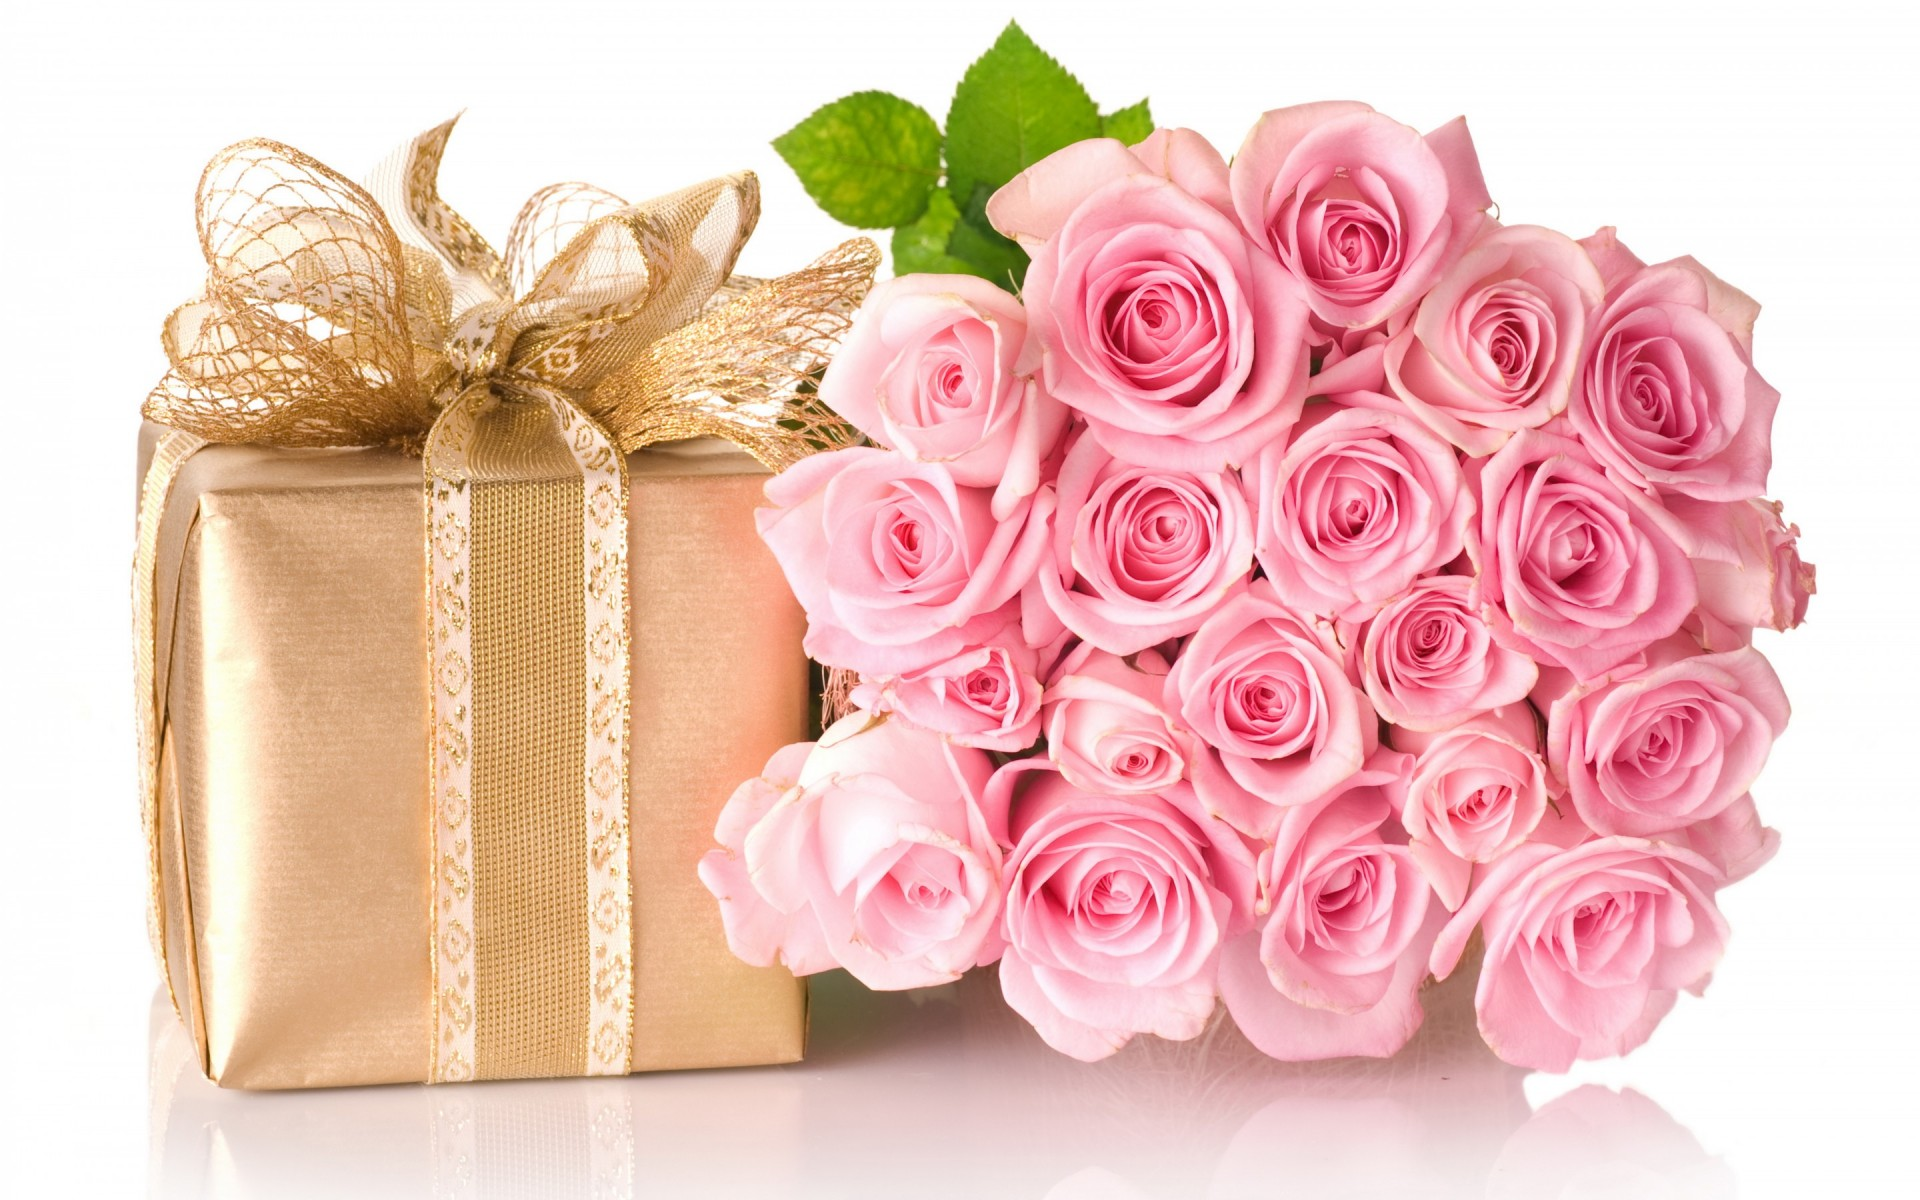 Happy birthday images with rose flowers and gift box hd wallpapers available downloads izmirmasajfo Image collections